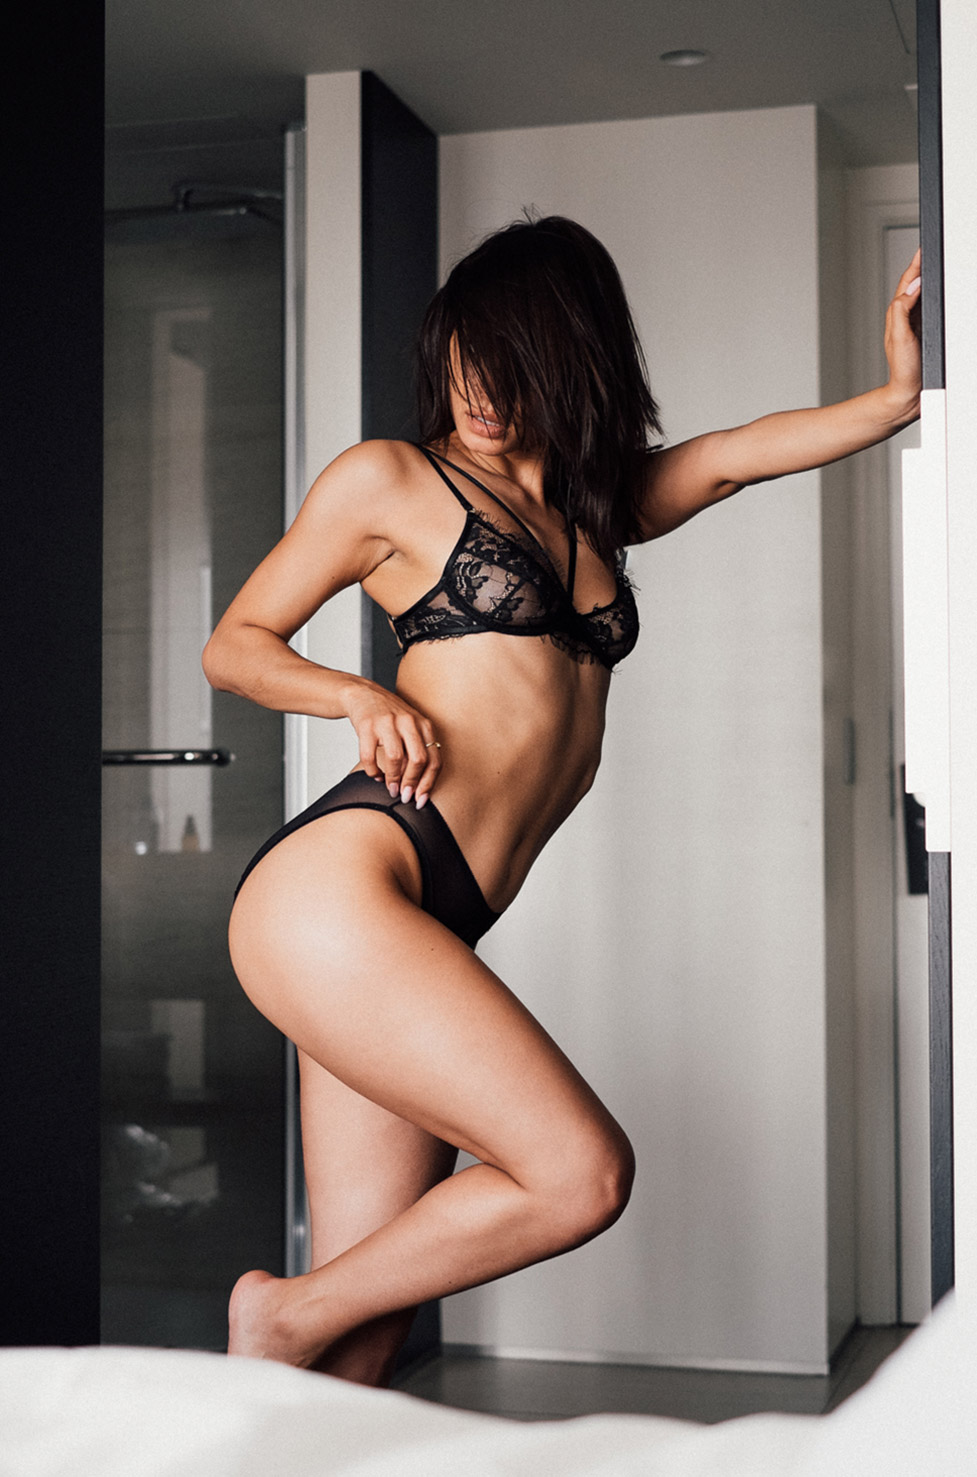 Zoe D'Albuquerque in lingerie by Julien LRVR in The Hotel, Brussels